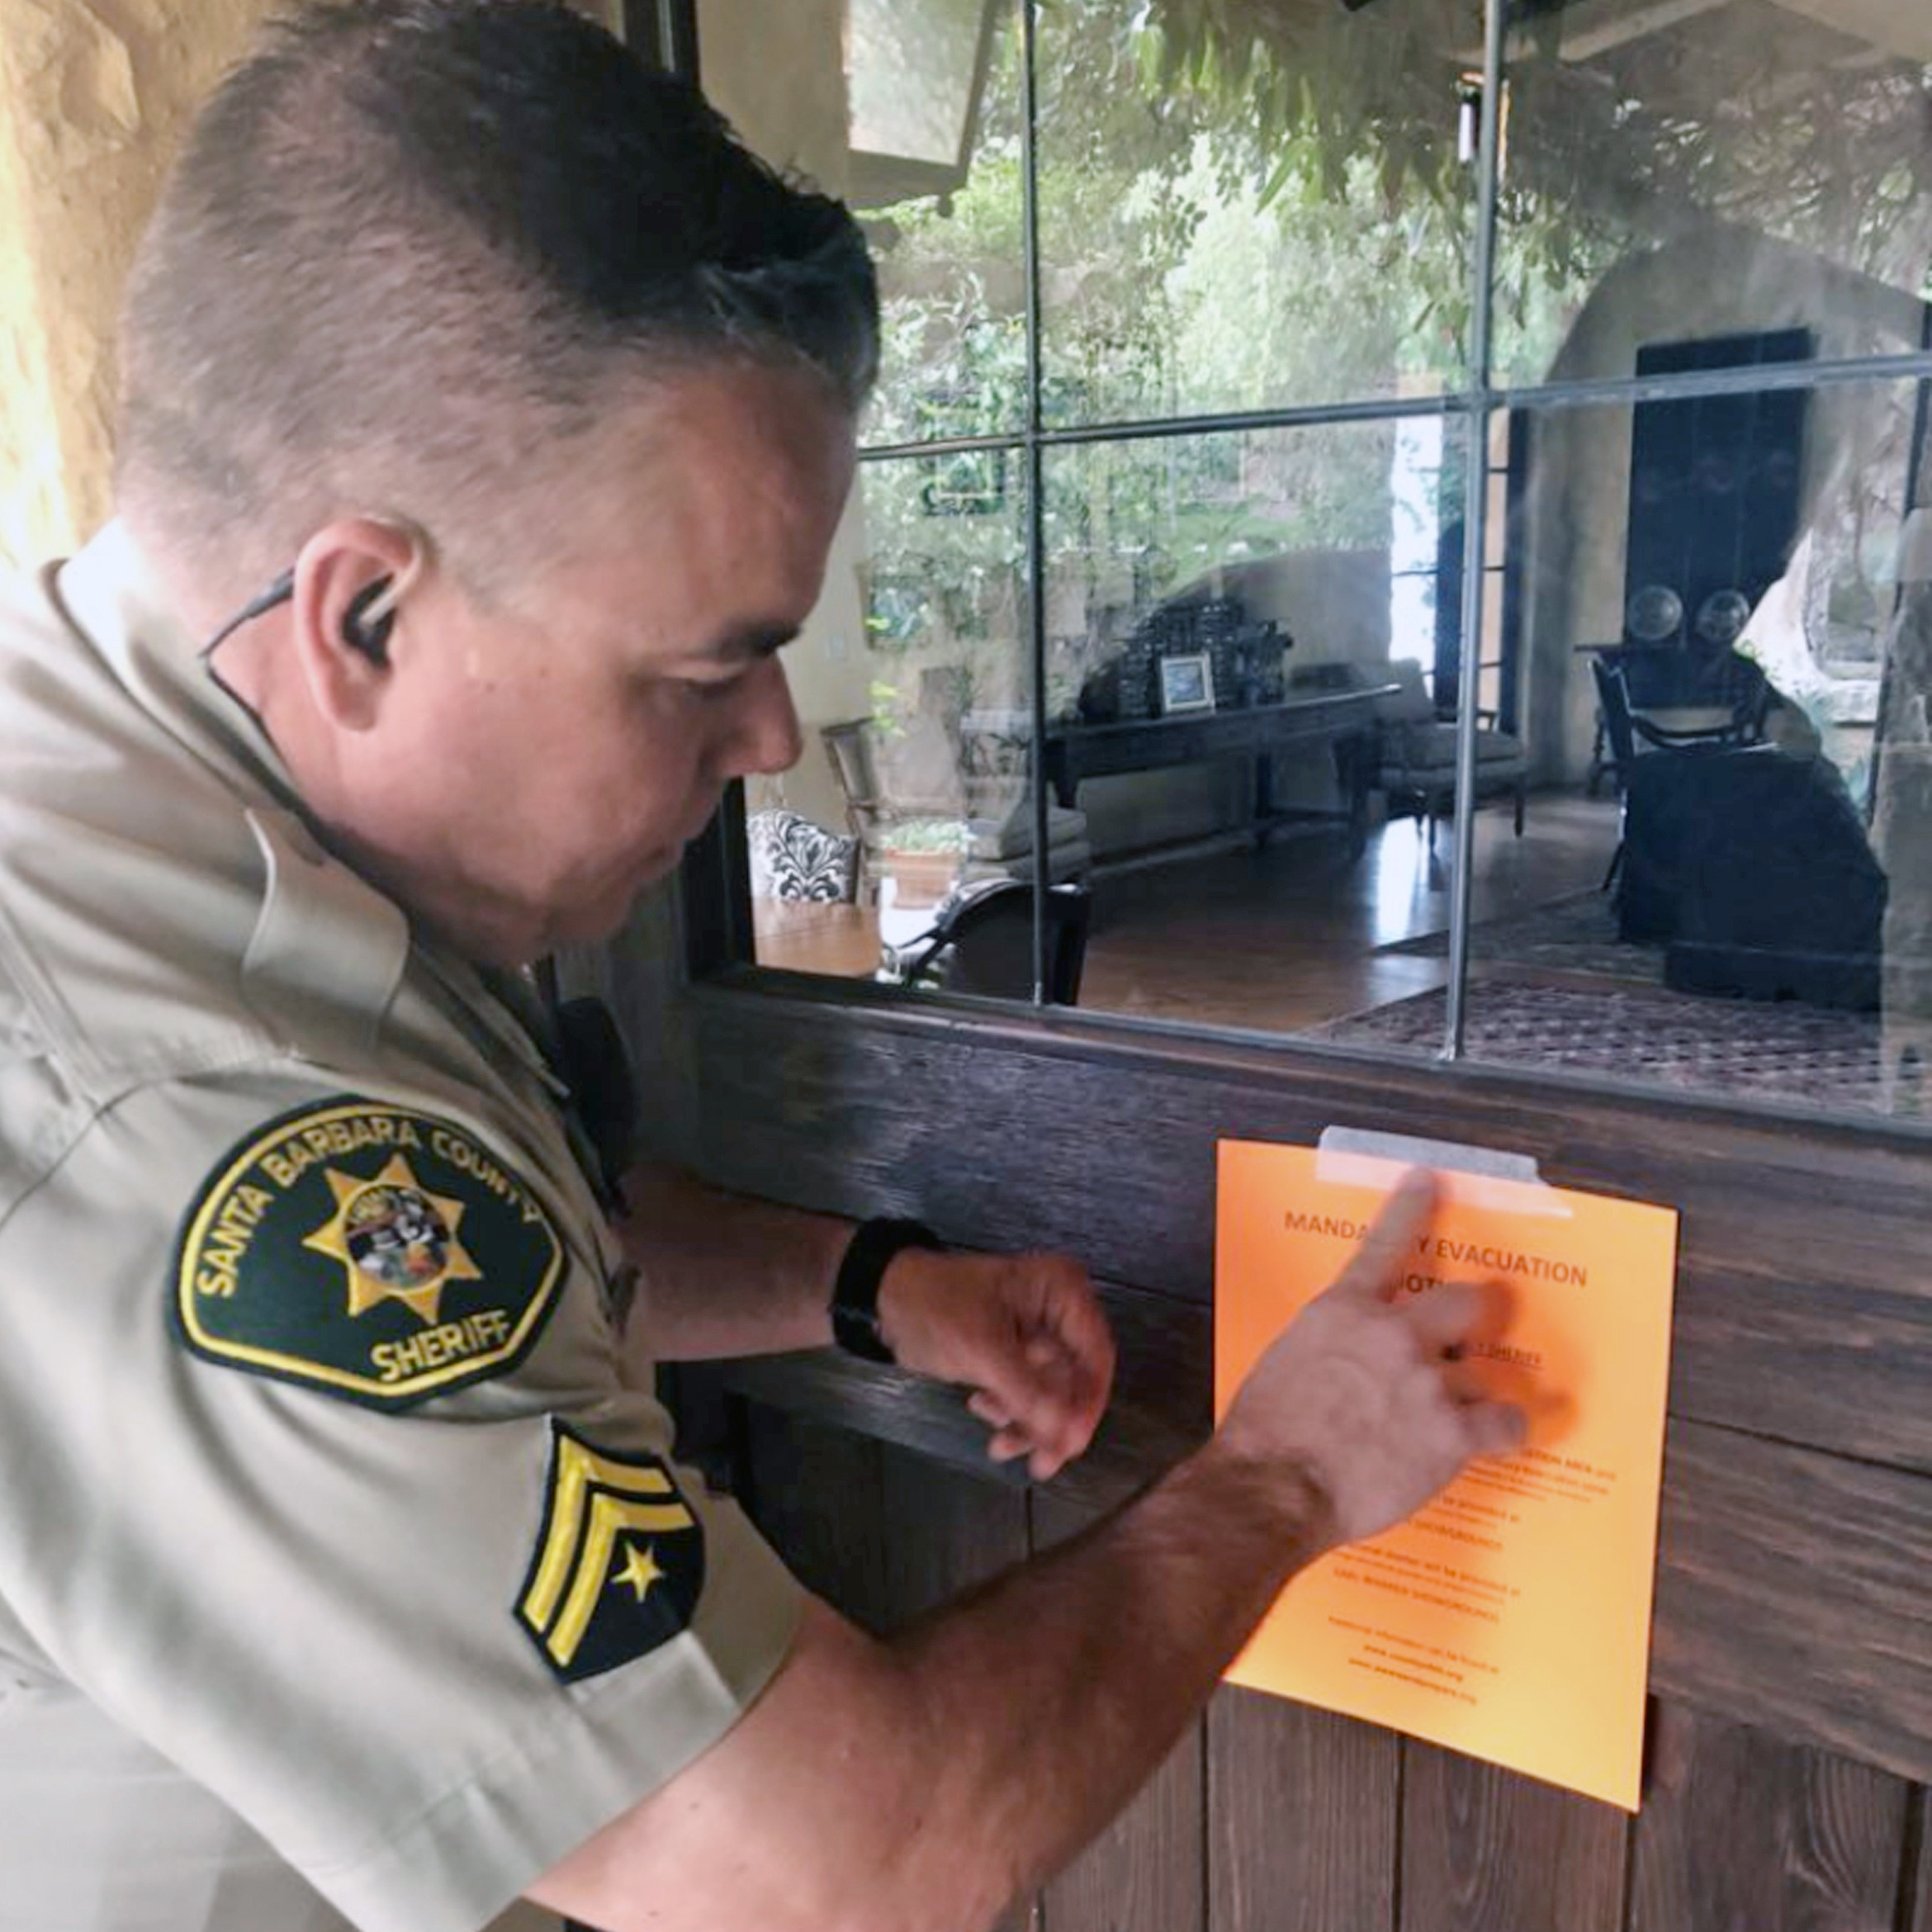 Santa Barbara County Sheriff's Deputy Mike Harris posts a notice on a home near Carpinteria, Calif., advising of the mandatory evacuation notice due to forecast rain and possible debris flow due to the recent Thomas Fire, on  Thursday.